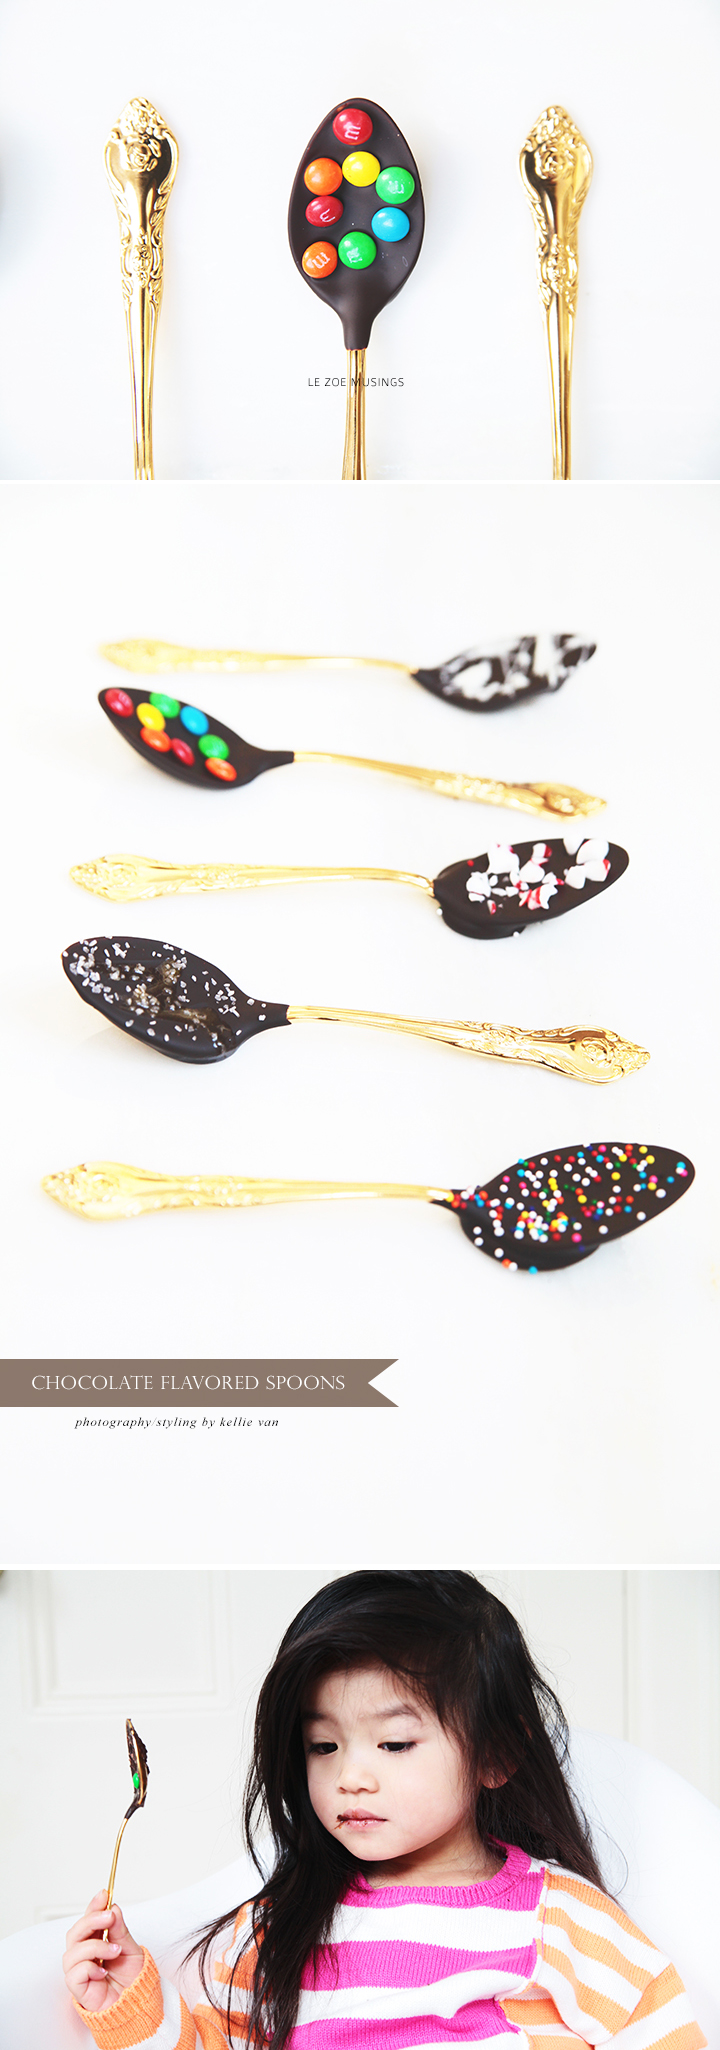 Chocolate Flavored Spoon by Le Zoe Musings_3